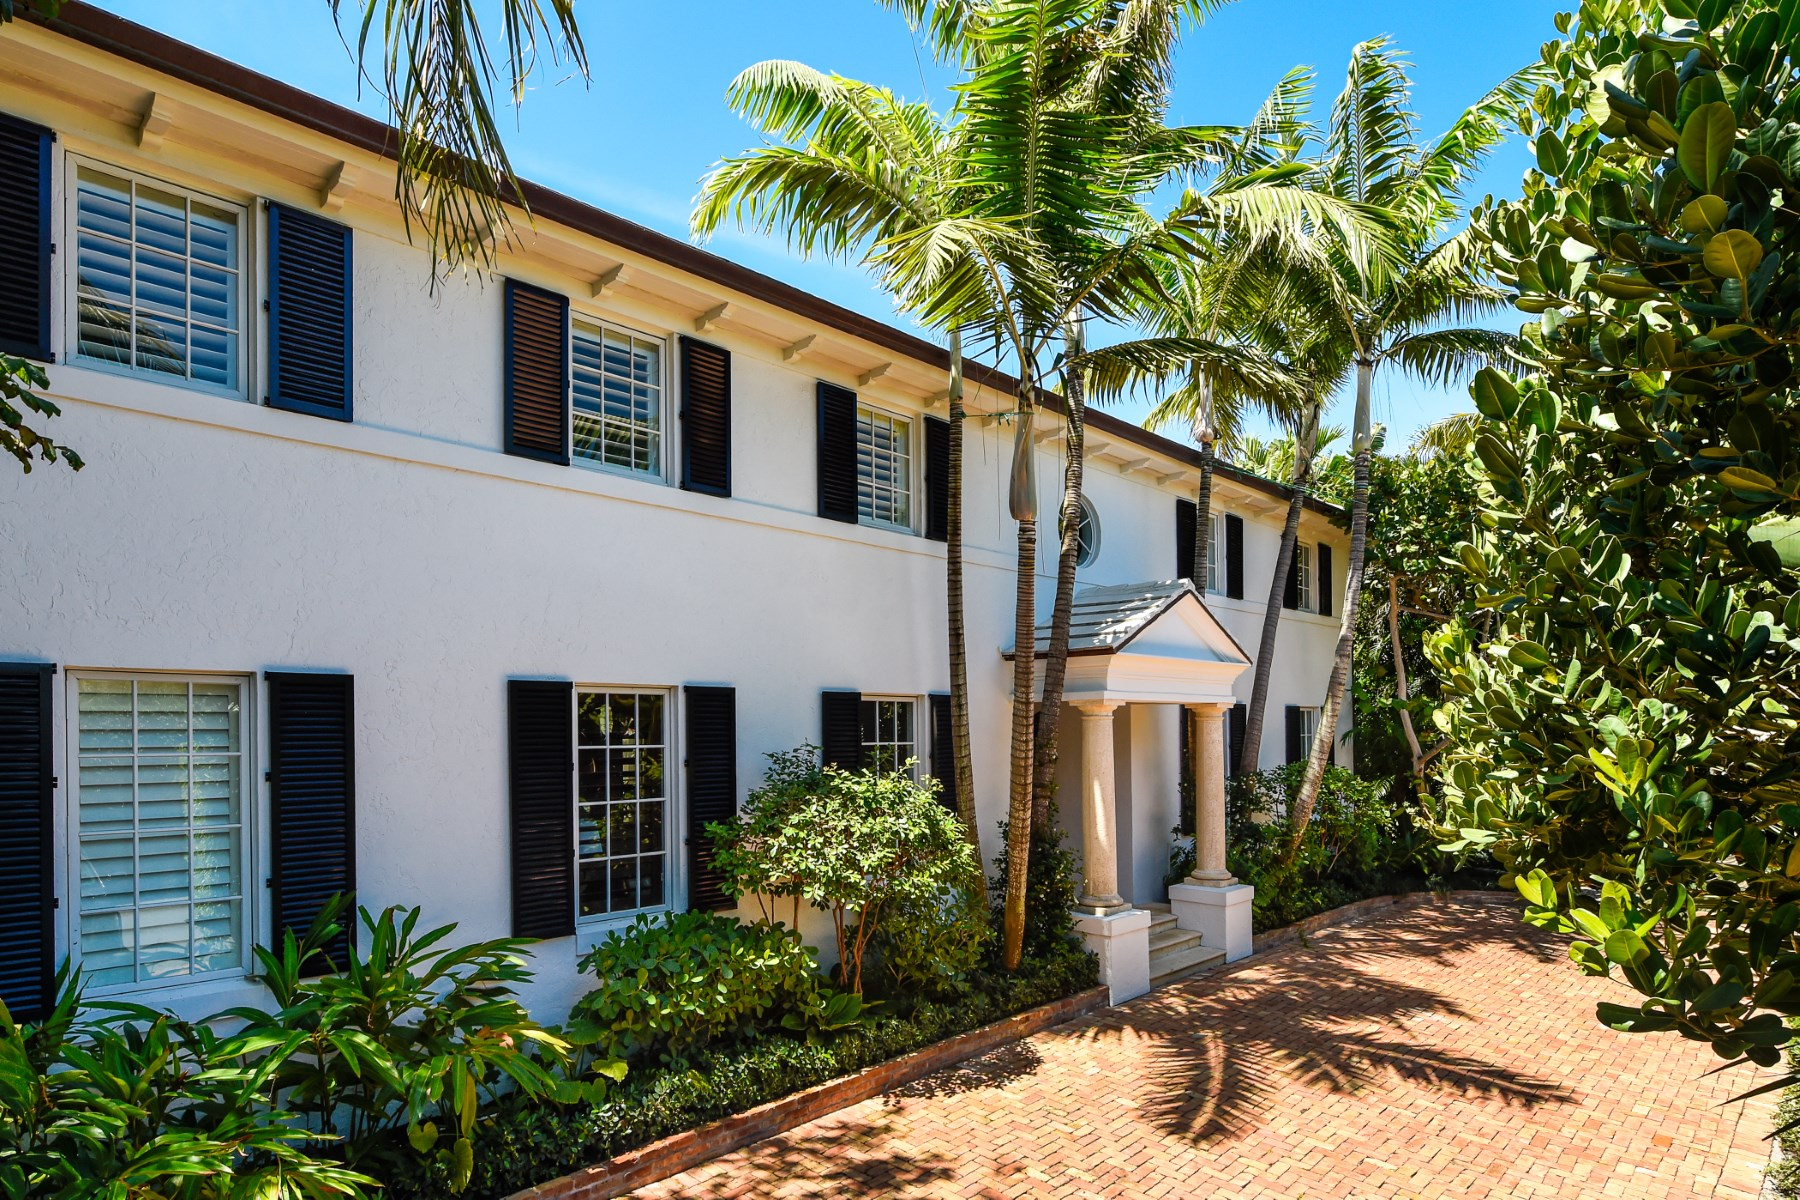 Maison unifamiliale pour l Vente à Georgian Colonial Style Home - Eden Road 310 Eden Rd North End, Palm Beach, Florida, 33480 États-Unis